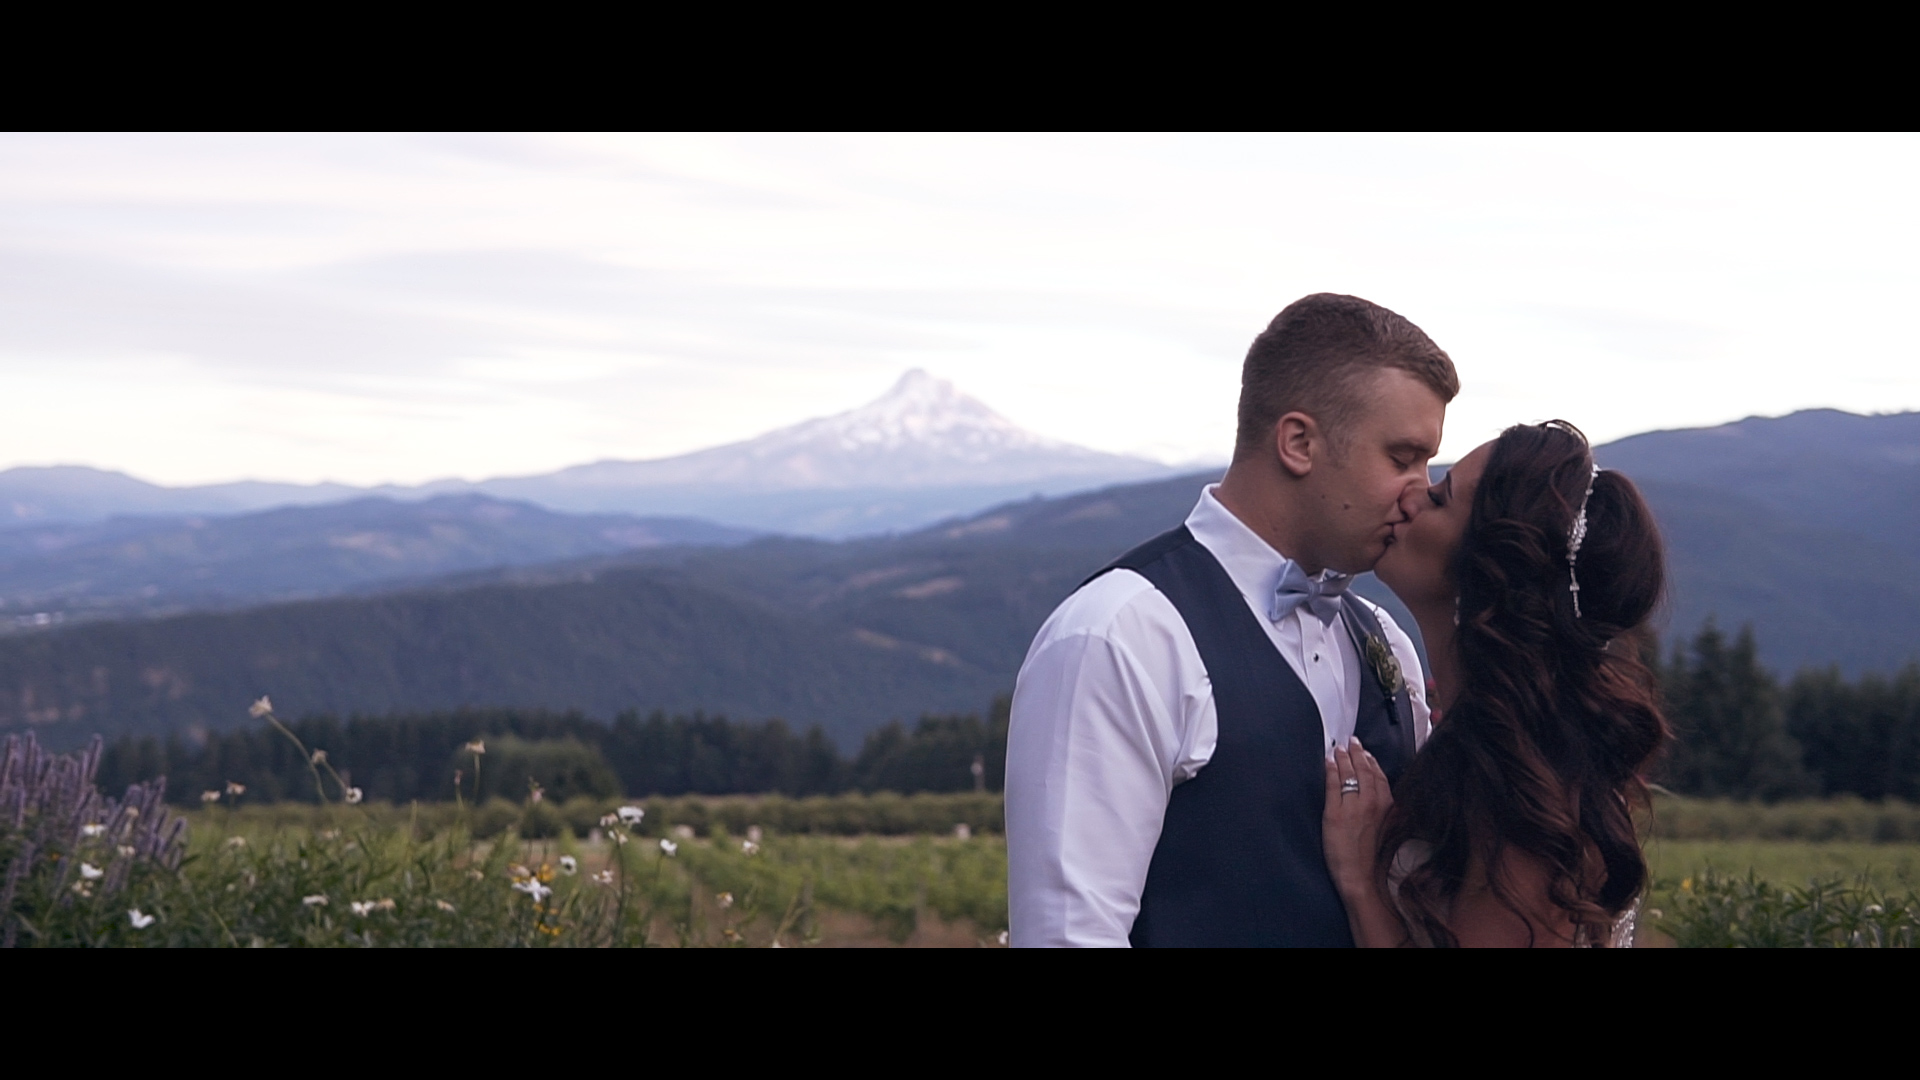 Brittany + Dan | Underwood, Washington | Gorge Crest Vineyards